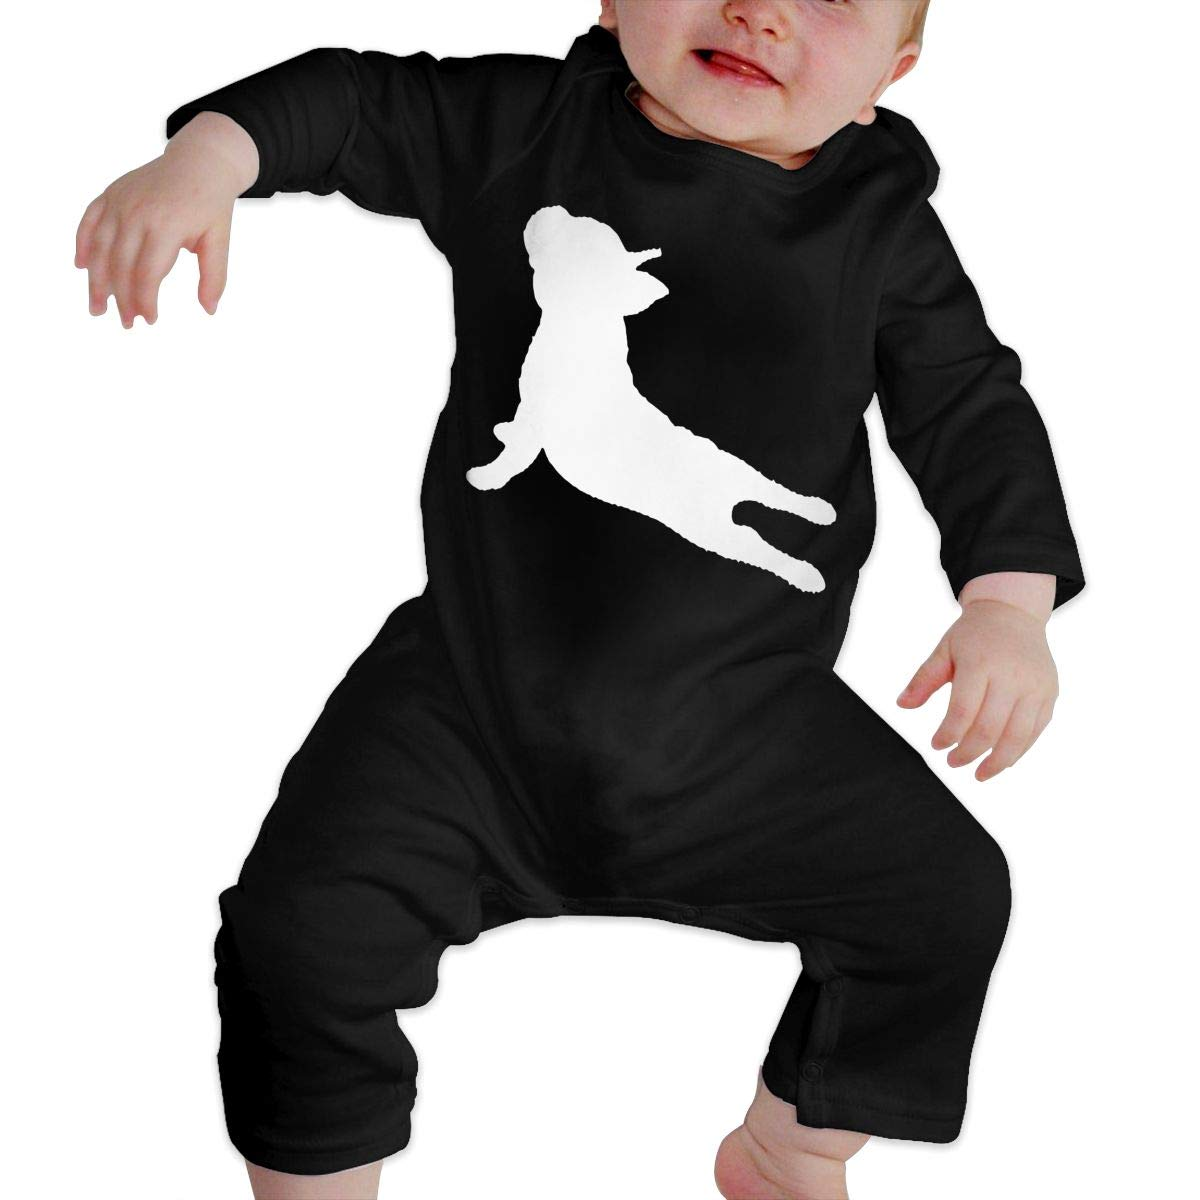 A1BY-5US Infant Baby Boys Girls Cotton Long Sleeve French Bulldog Yoga Jumpsuit Romper Funny Printed Romper Clothes